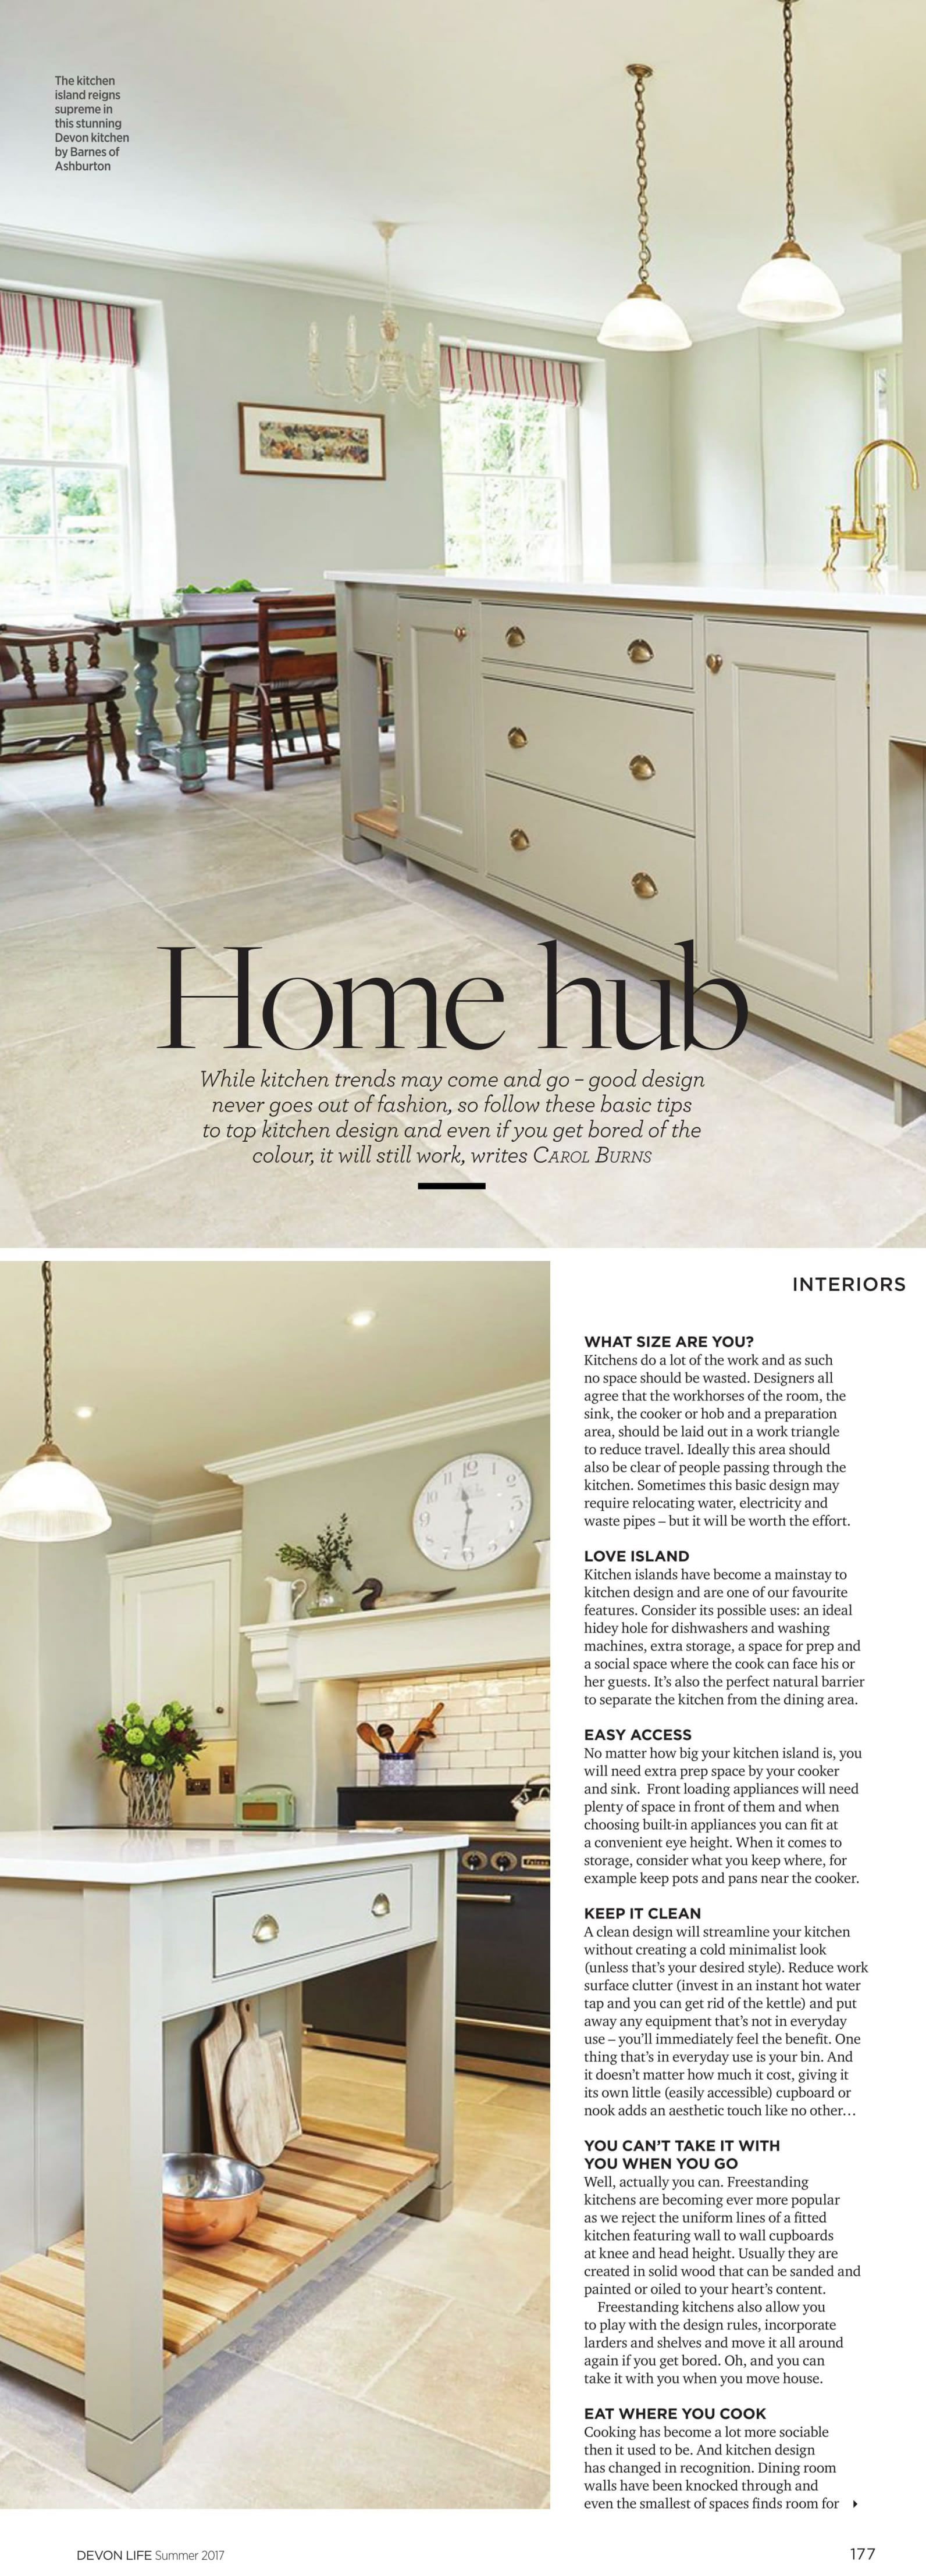 DEVON LIFE Summer Kitchen design article